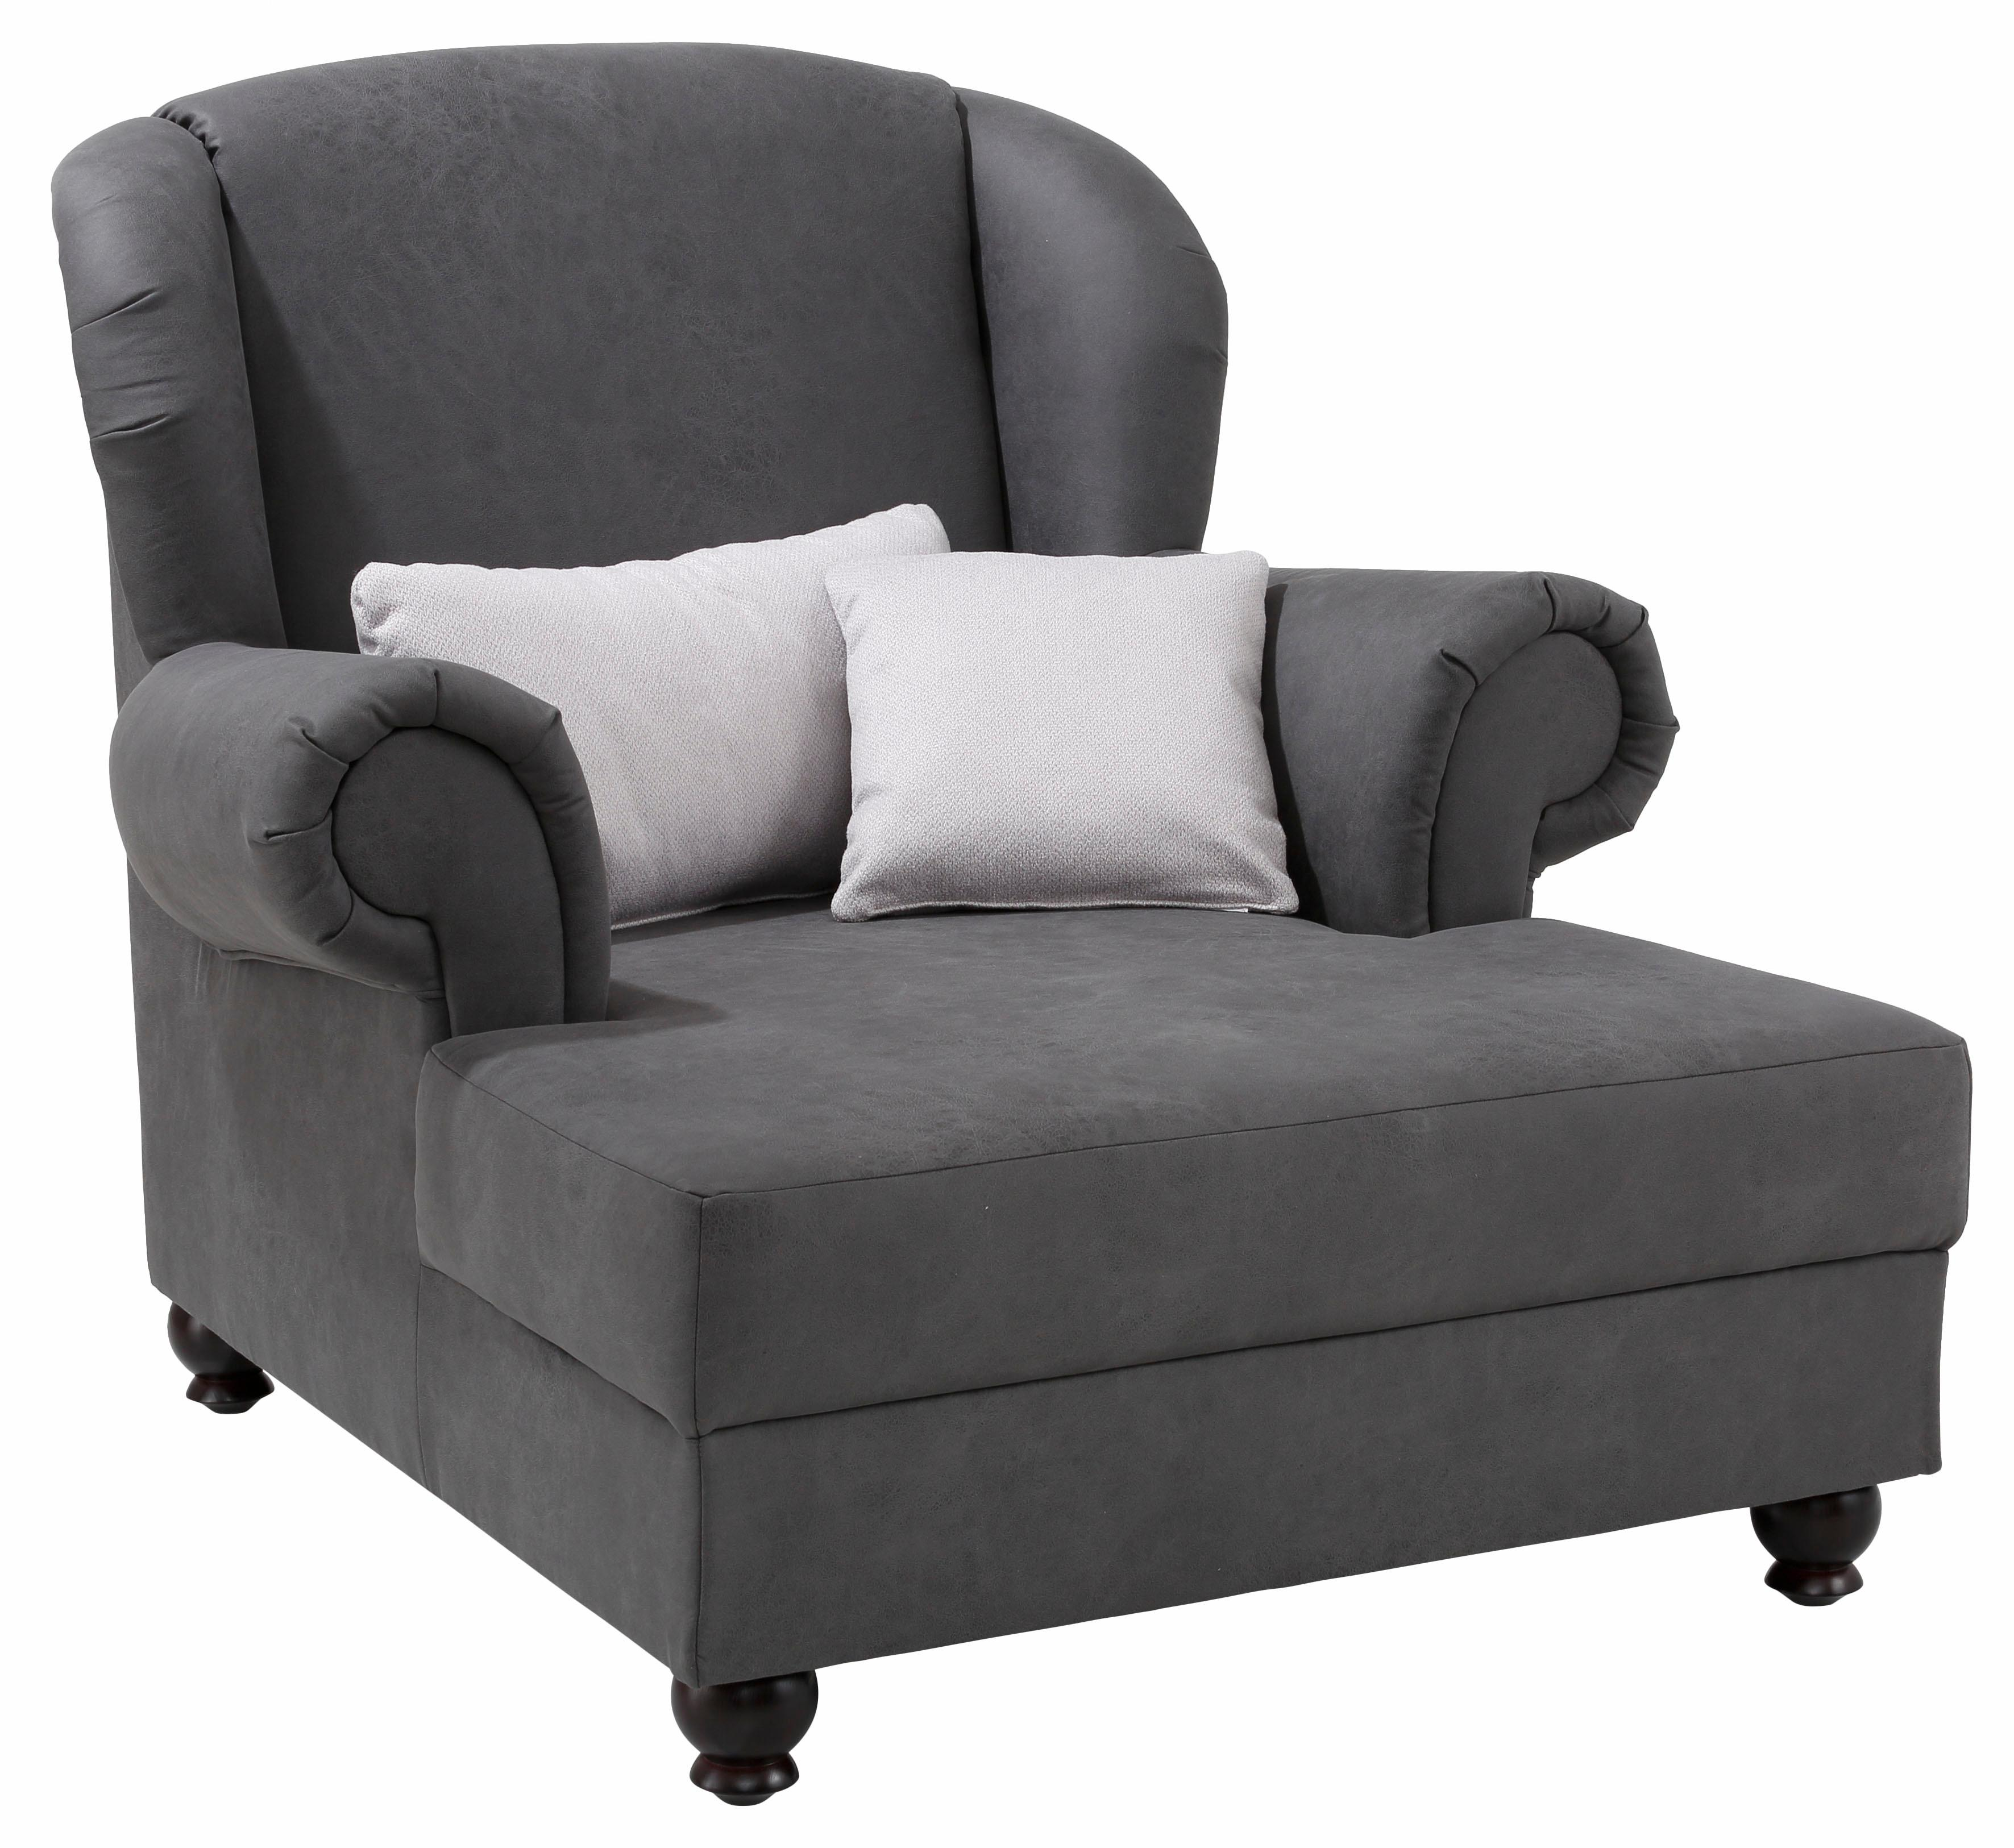 Home affaire XXL-Sessel King Henry